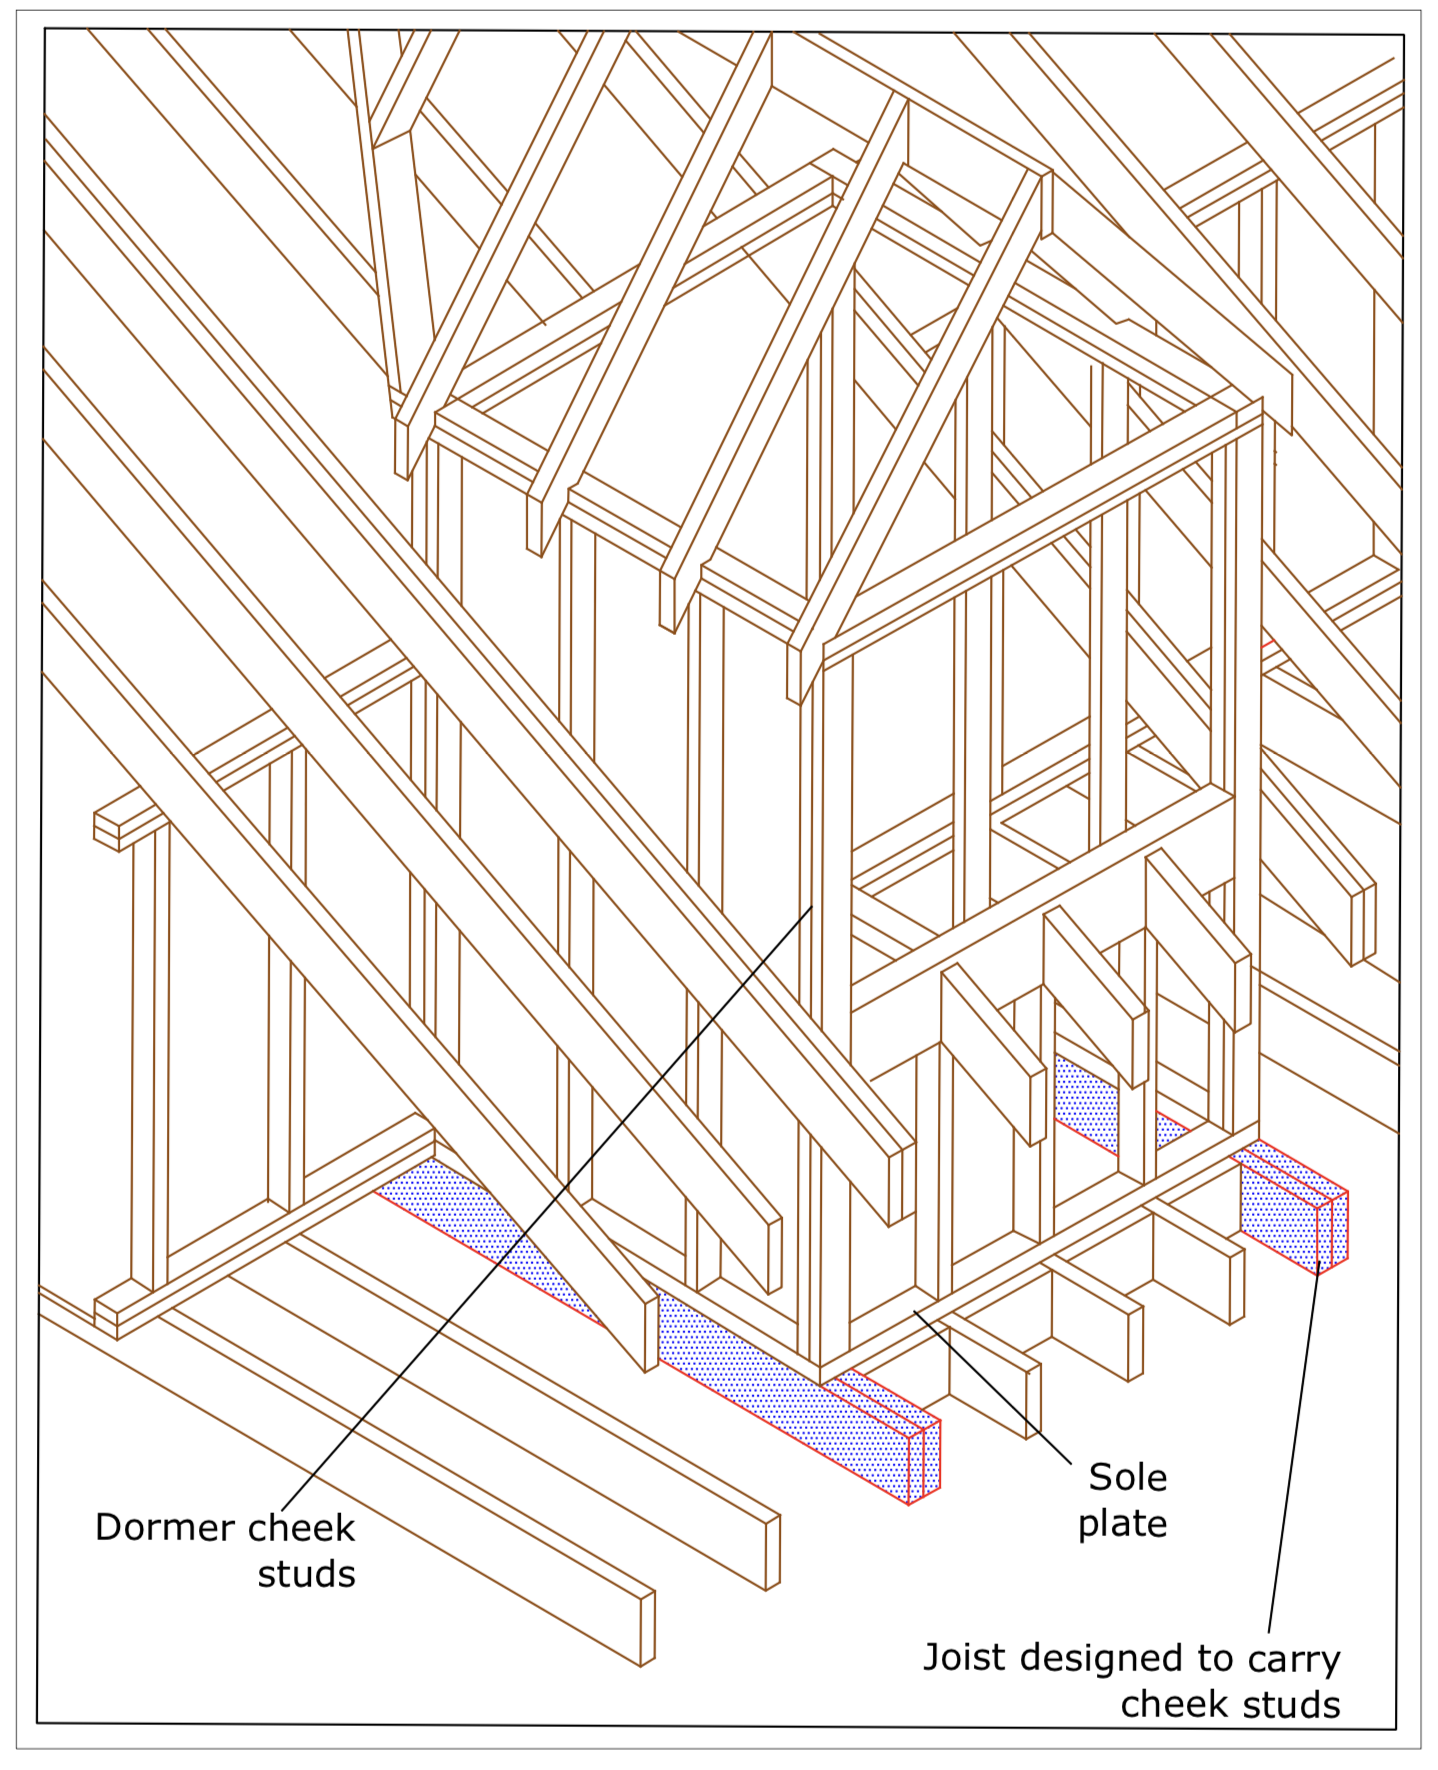 Diagram D52 - Typical dormer window construction